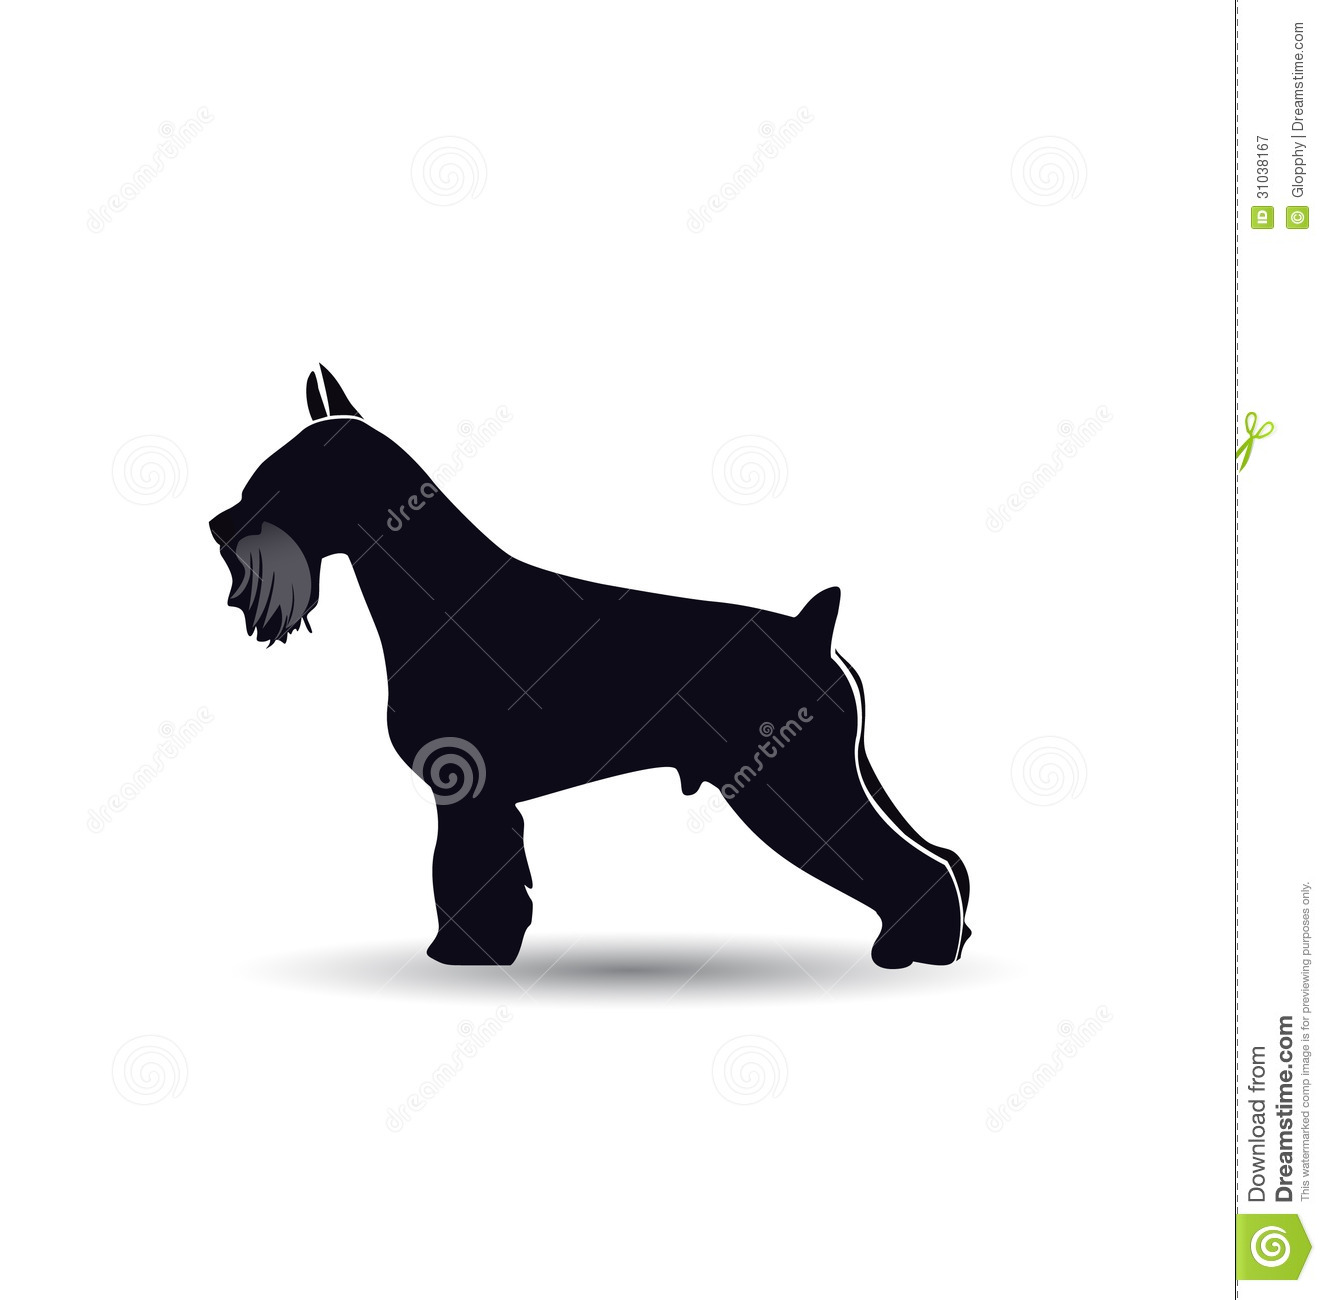 Schnauzer Dog Logo Silhouette Royalty Free Stock Photography - Image ... Veterinary Tools Clip Art